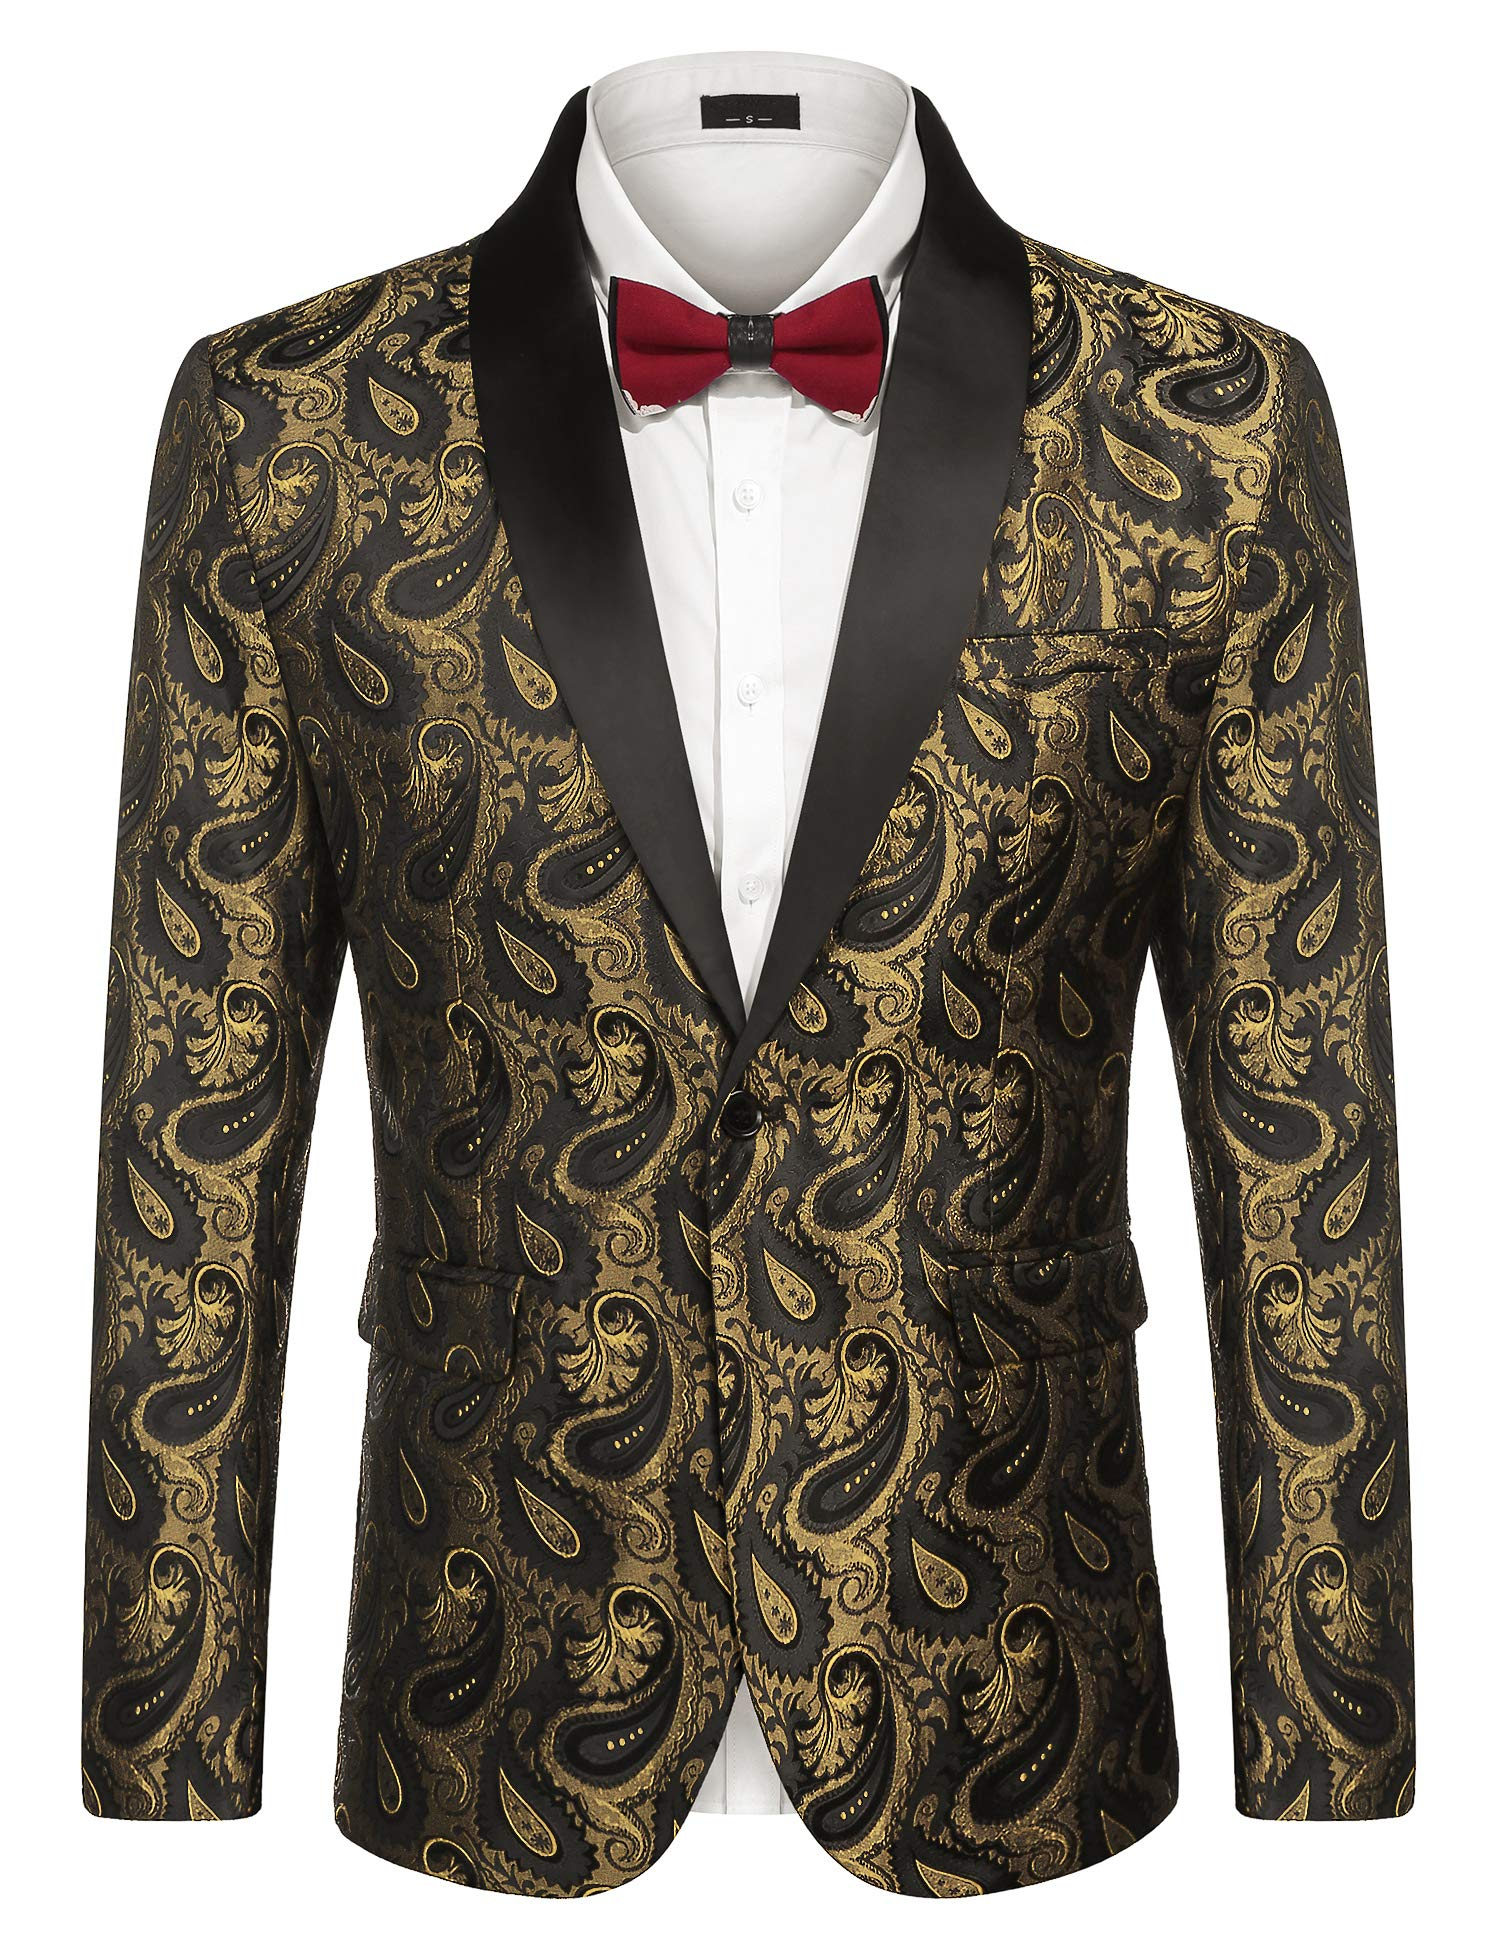 JINIDU Men's Floral Tuxedo Jacket Paisley Embroidered Suit Jacket for Dinner,Party,Wedding,Prom Golden by JINIDU